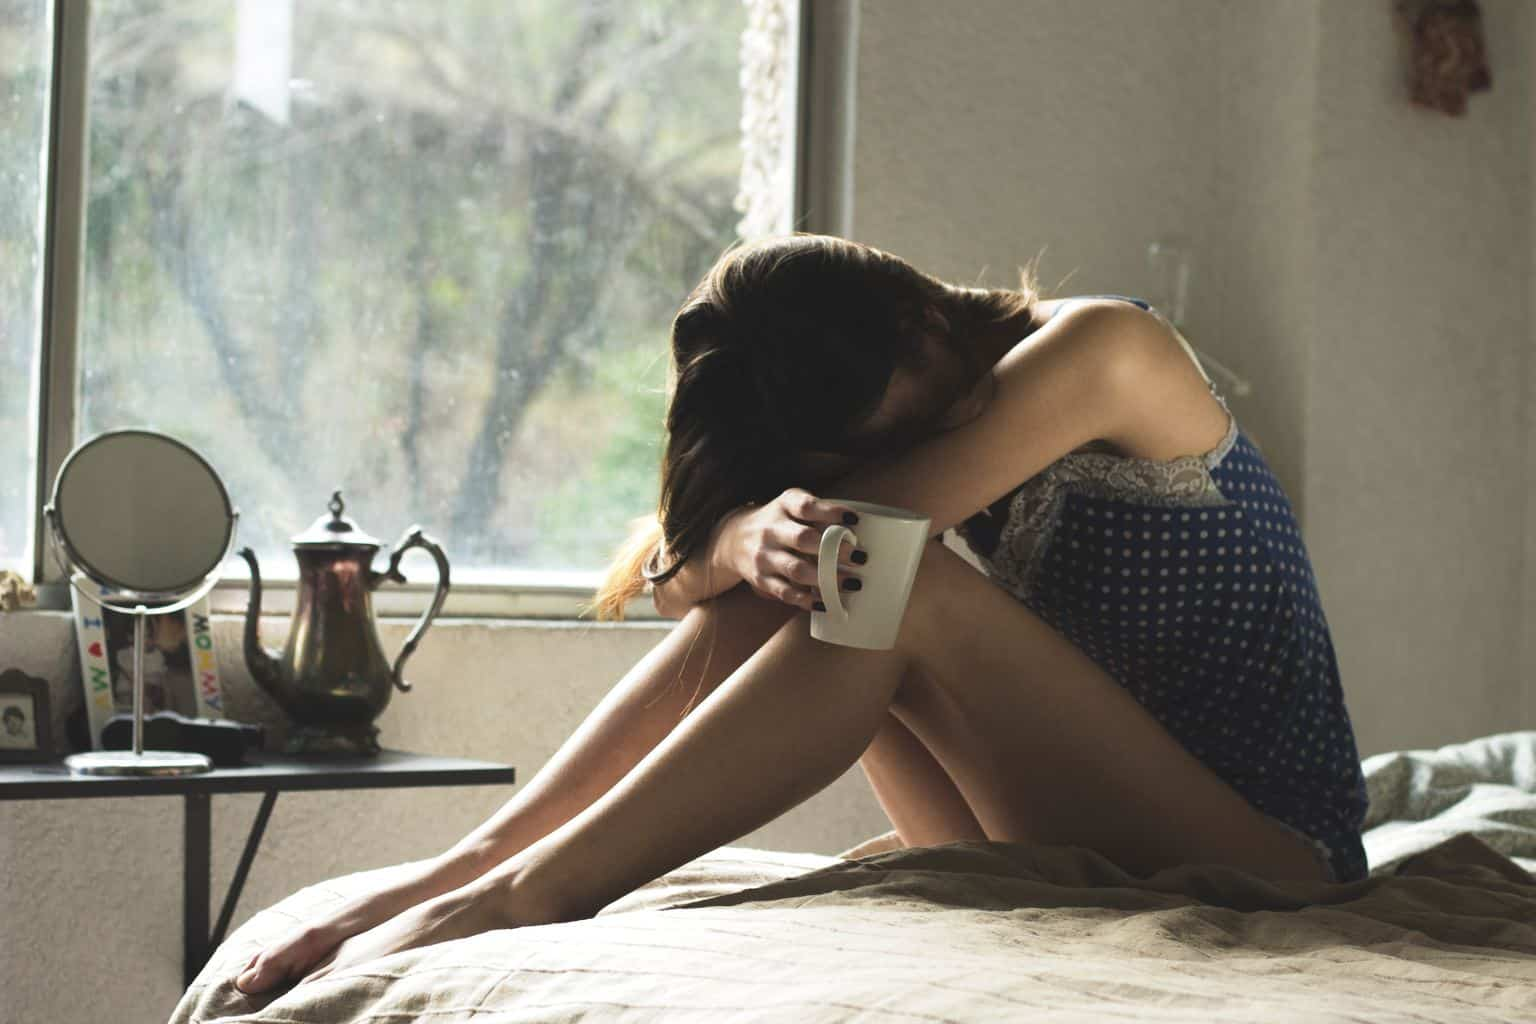 depressed woman sitting on the bed, holding a mug